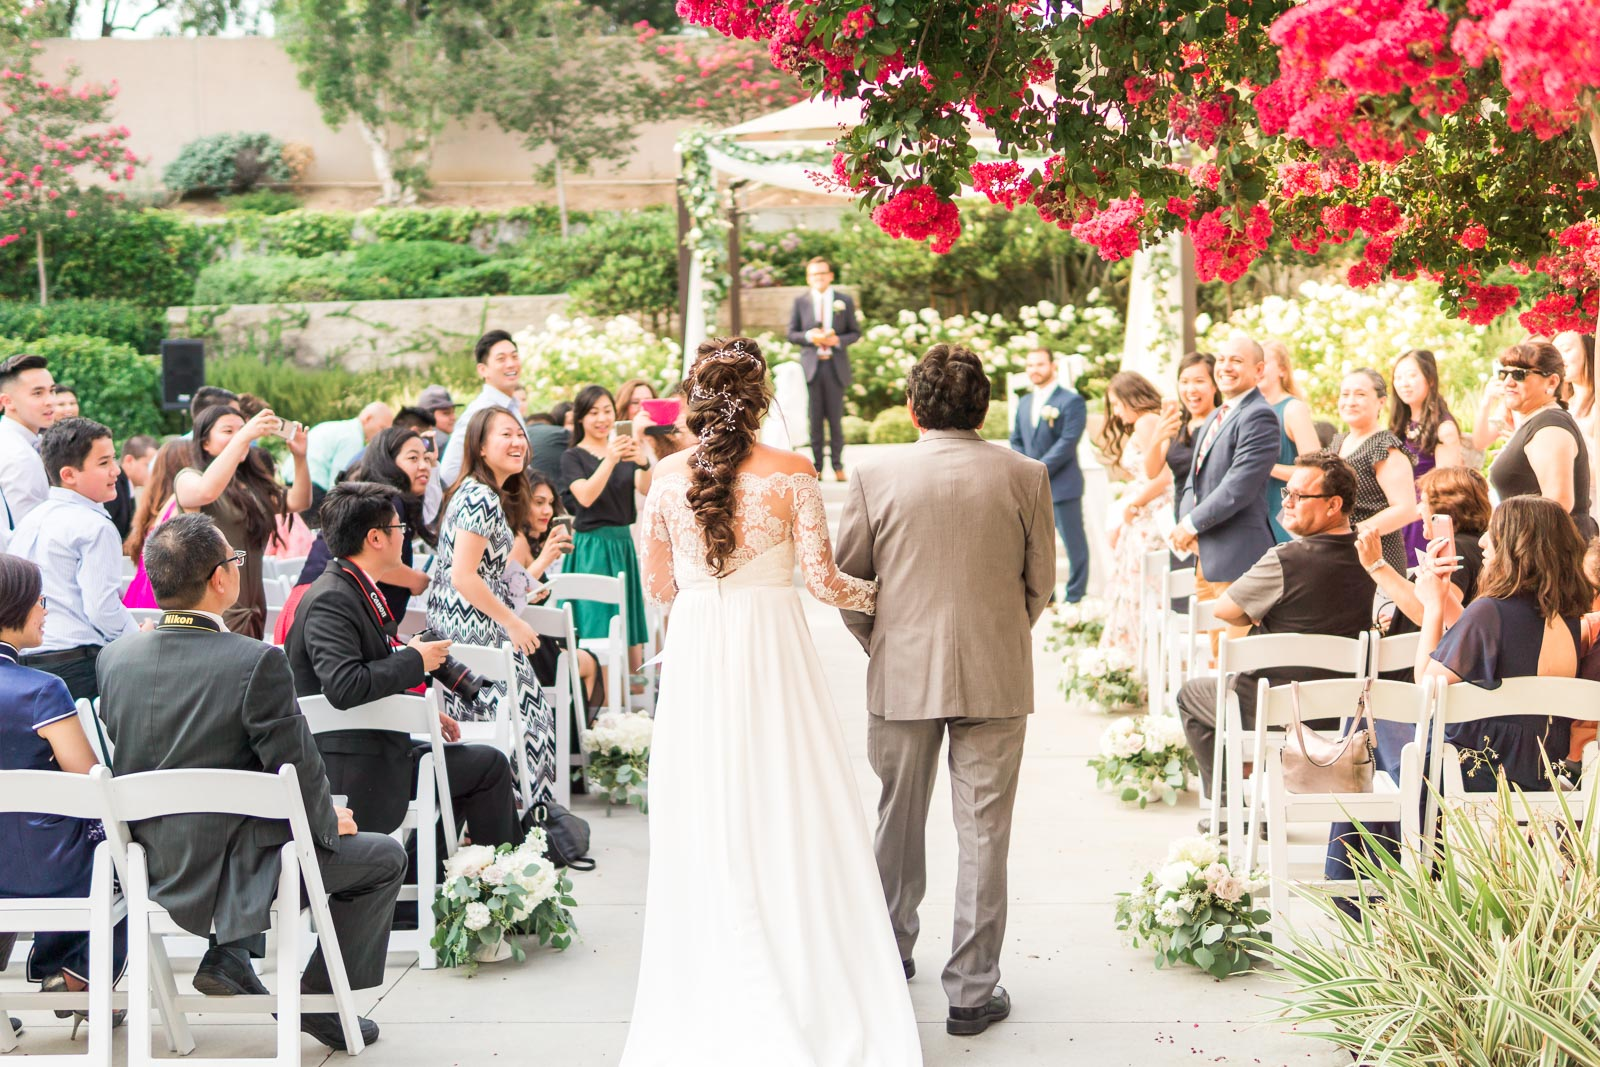 148_Angel-Brea-Orange-County_Joseph-Barber-Wedding-Photography.jpg